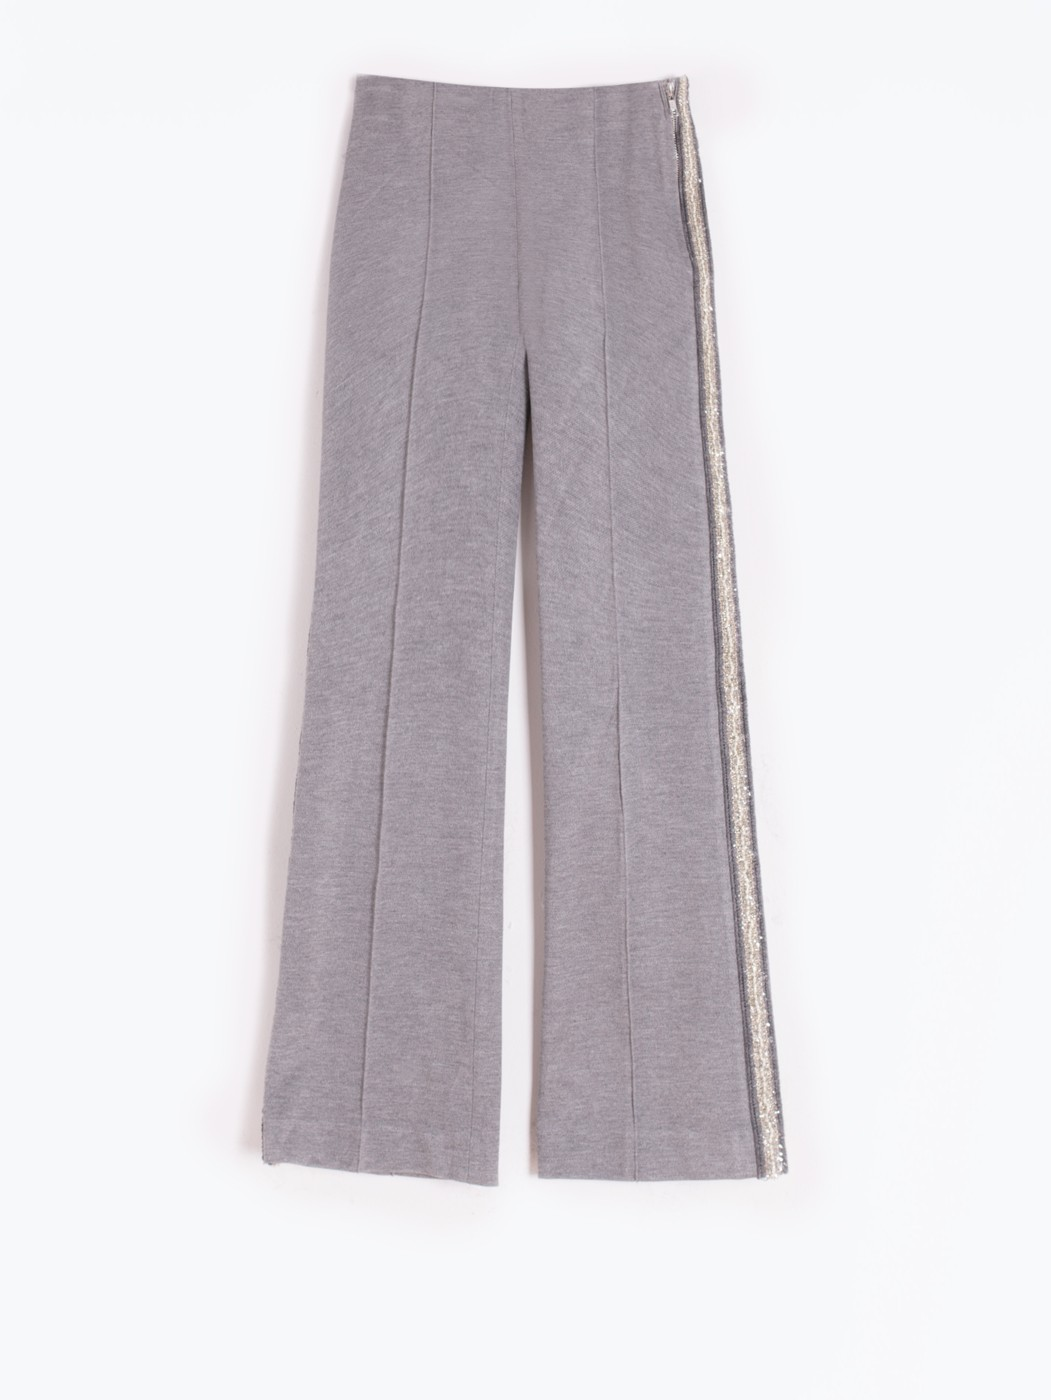 PANTALON GIULLIA GREY